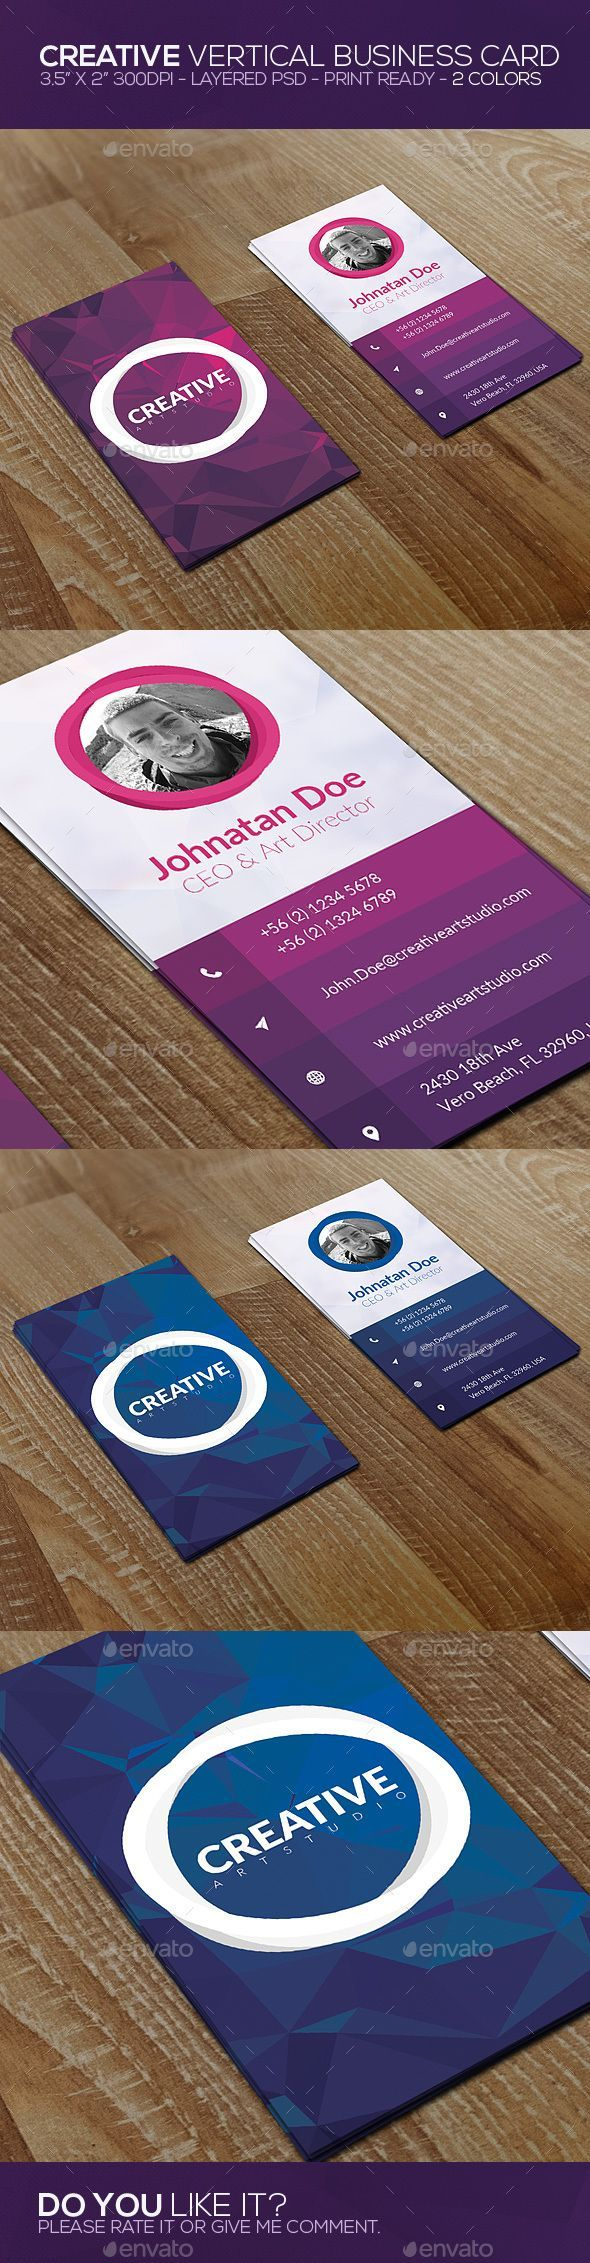 Creative Vertical Business Card Template PSD. Download here: http://graphicriver.net/item/creative-vertical-business-card/15410979?ref=ksioks